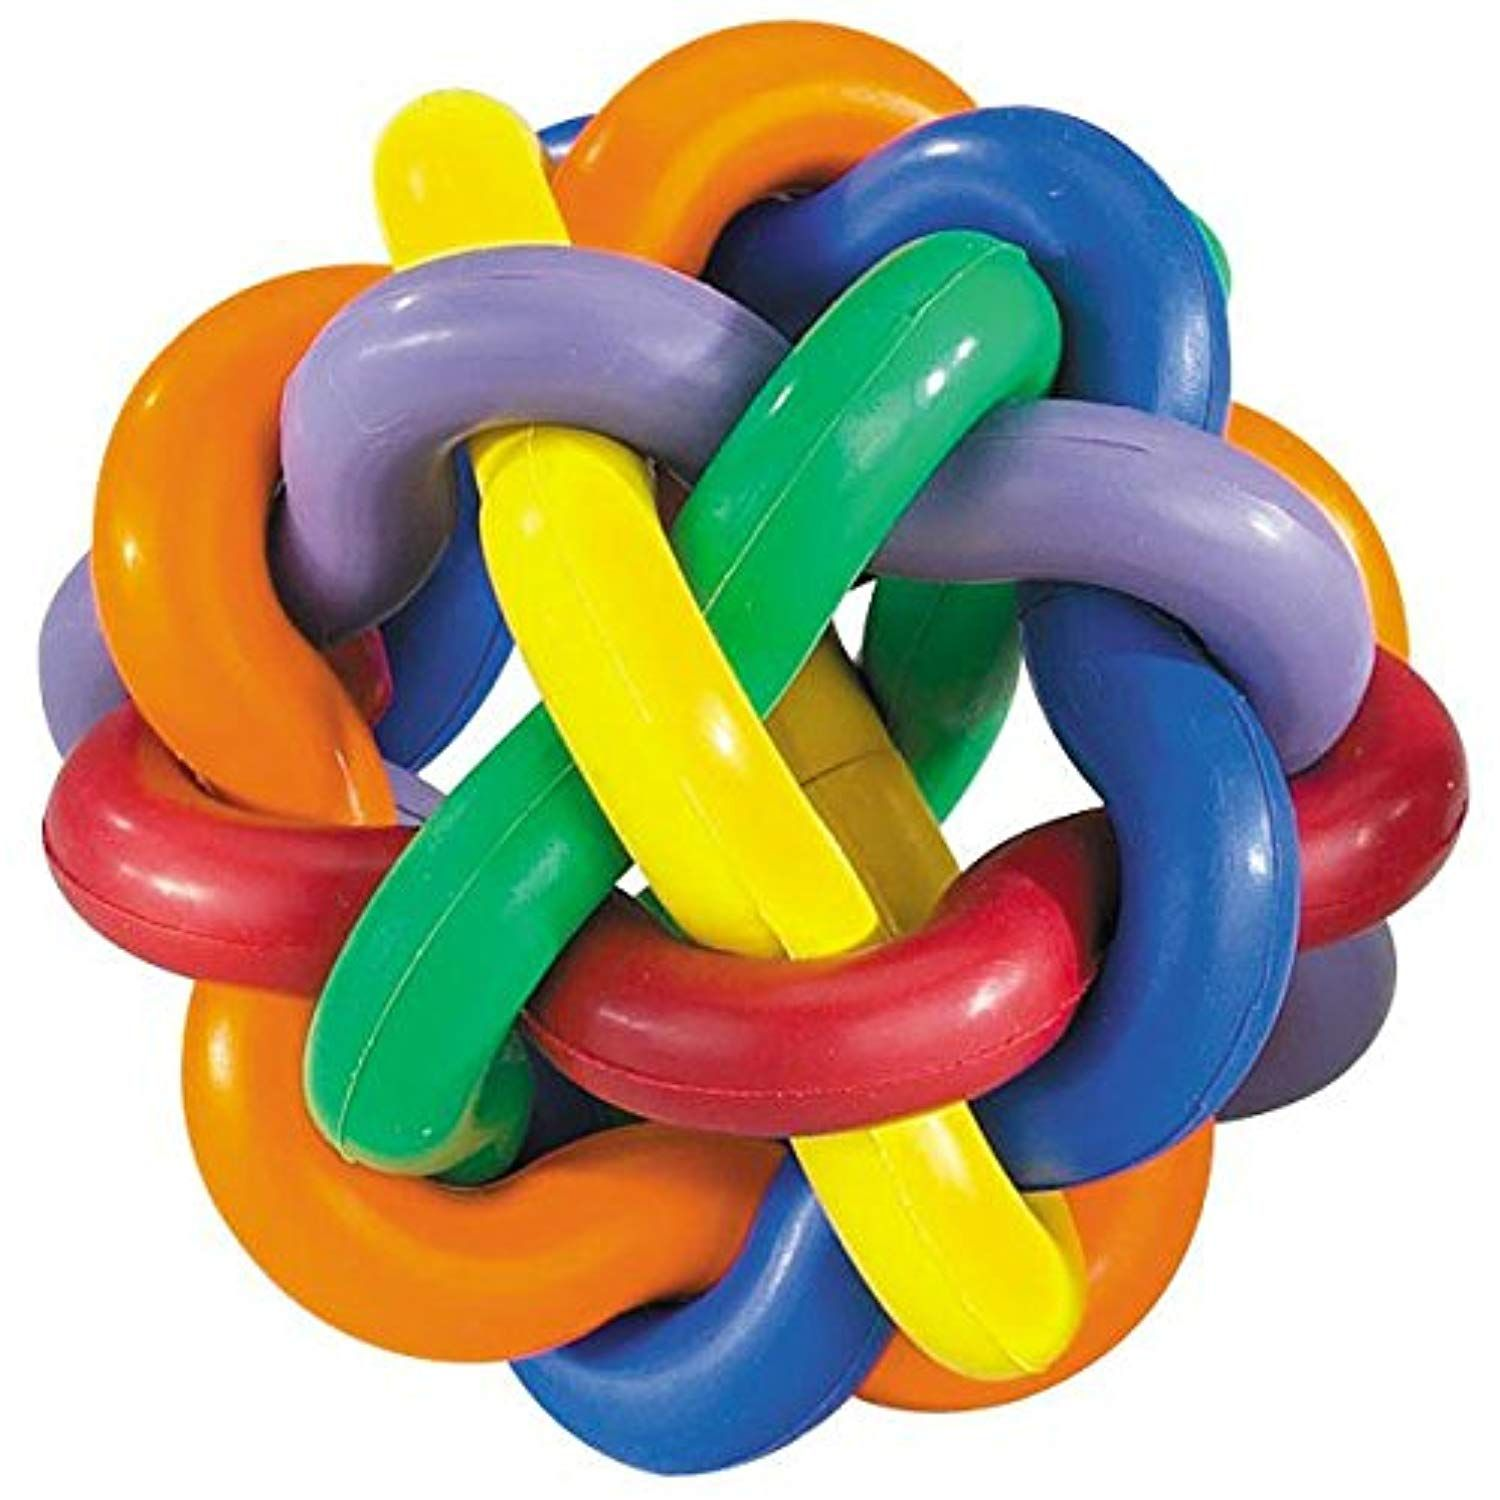 Hard Rubber Dog Toy Knobbly Wobbly Small 3 Inch Tough Chew Toys